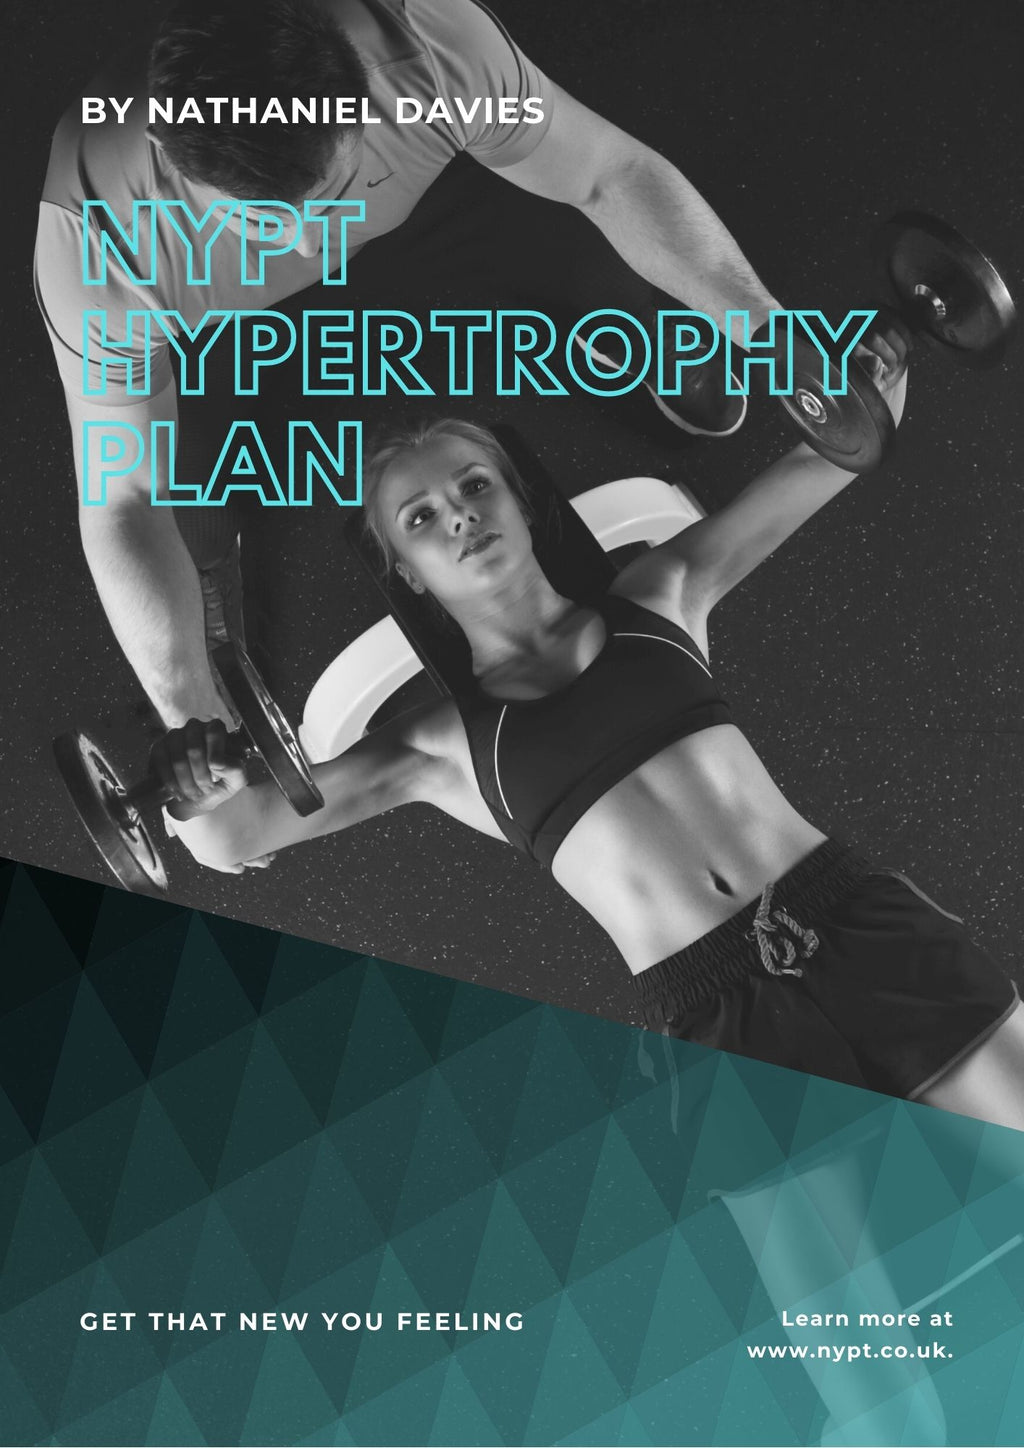 Hypertrophy 6 week plan - NYPersonalTraining